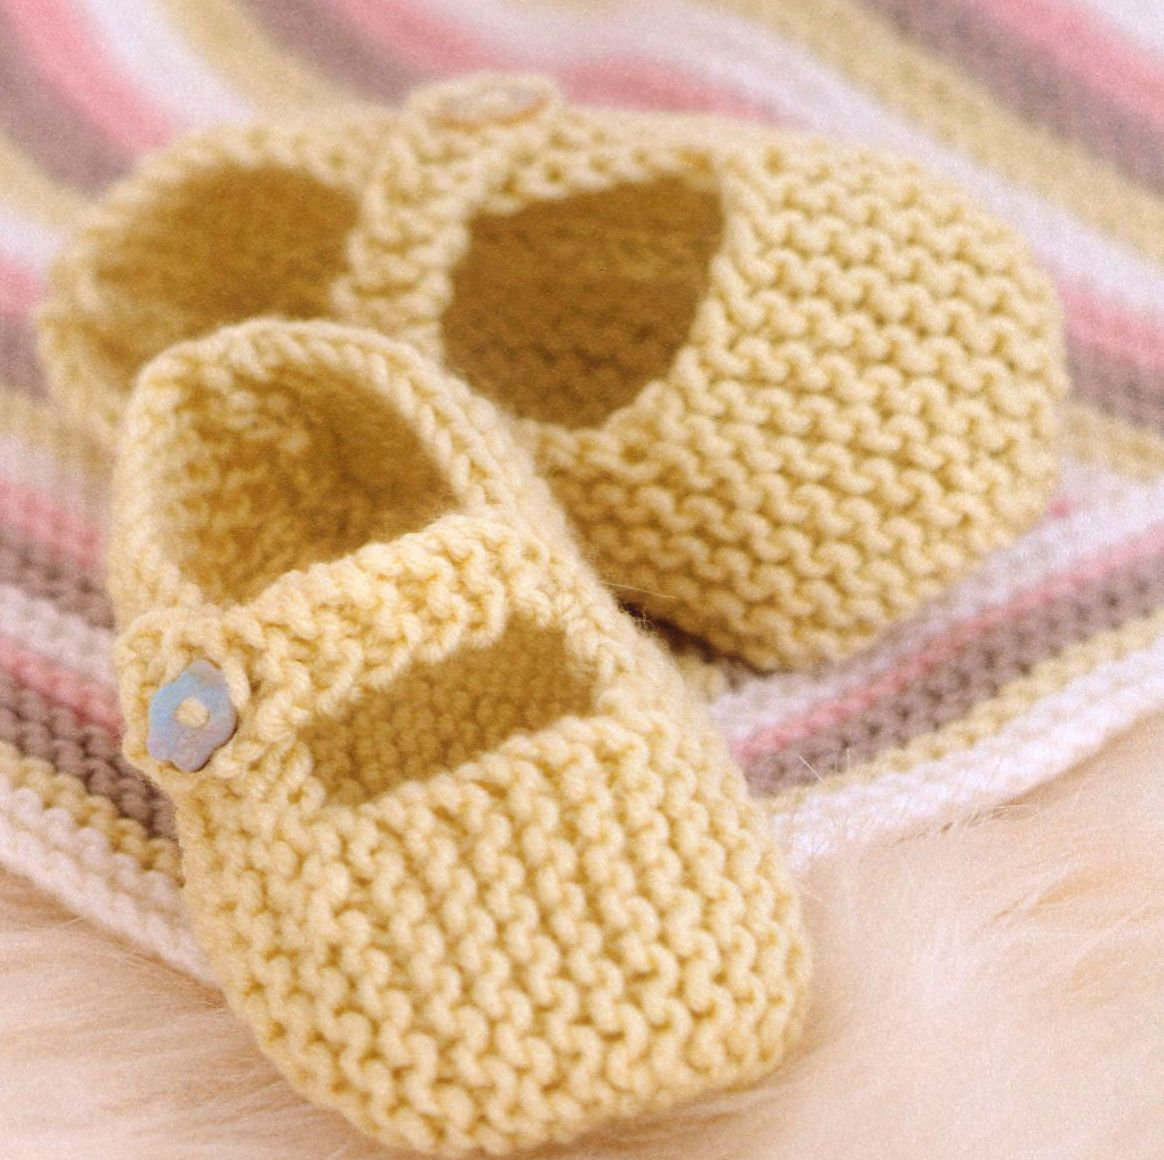 e26bfdb80 Baby Mary Janes and Other Little Shoes to Knit. | Projects to Try ...